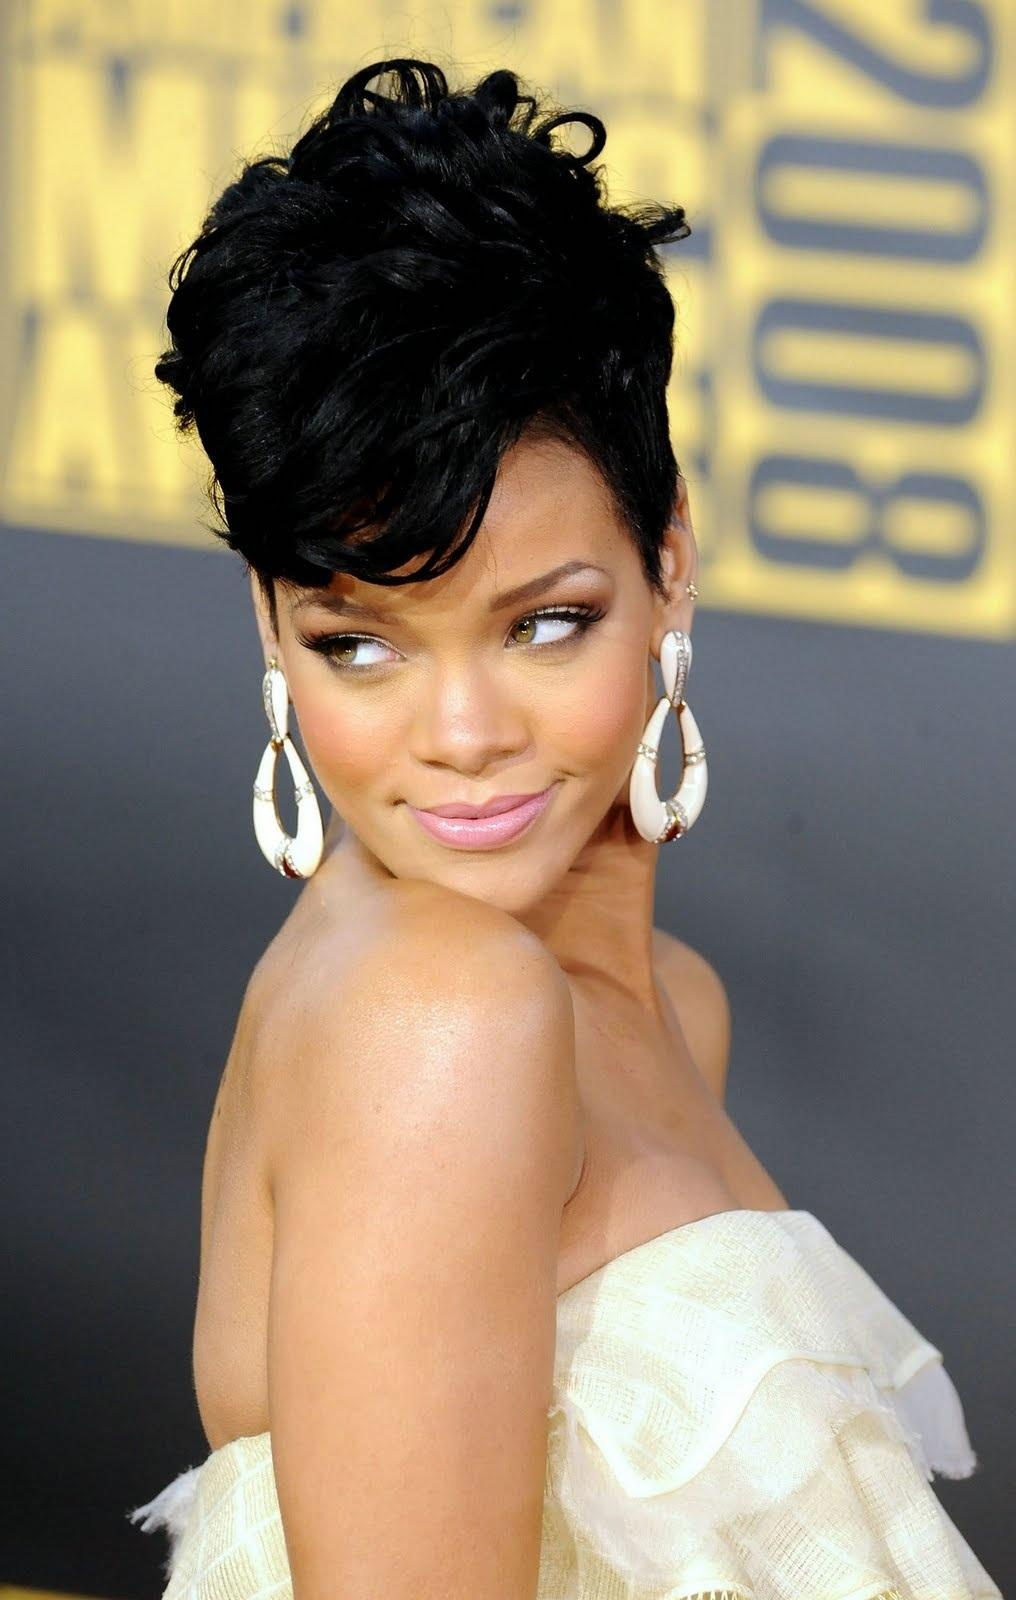 Peachy Top 17 Of The Best Short Hairstyles For Black Women 2015 Hairstyles For Women Draintrainus